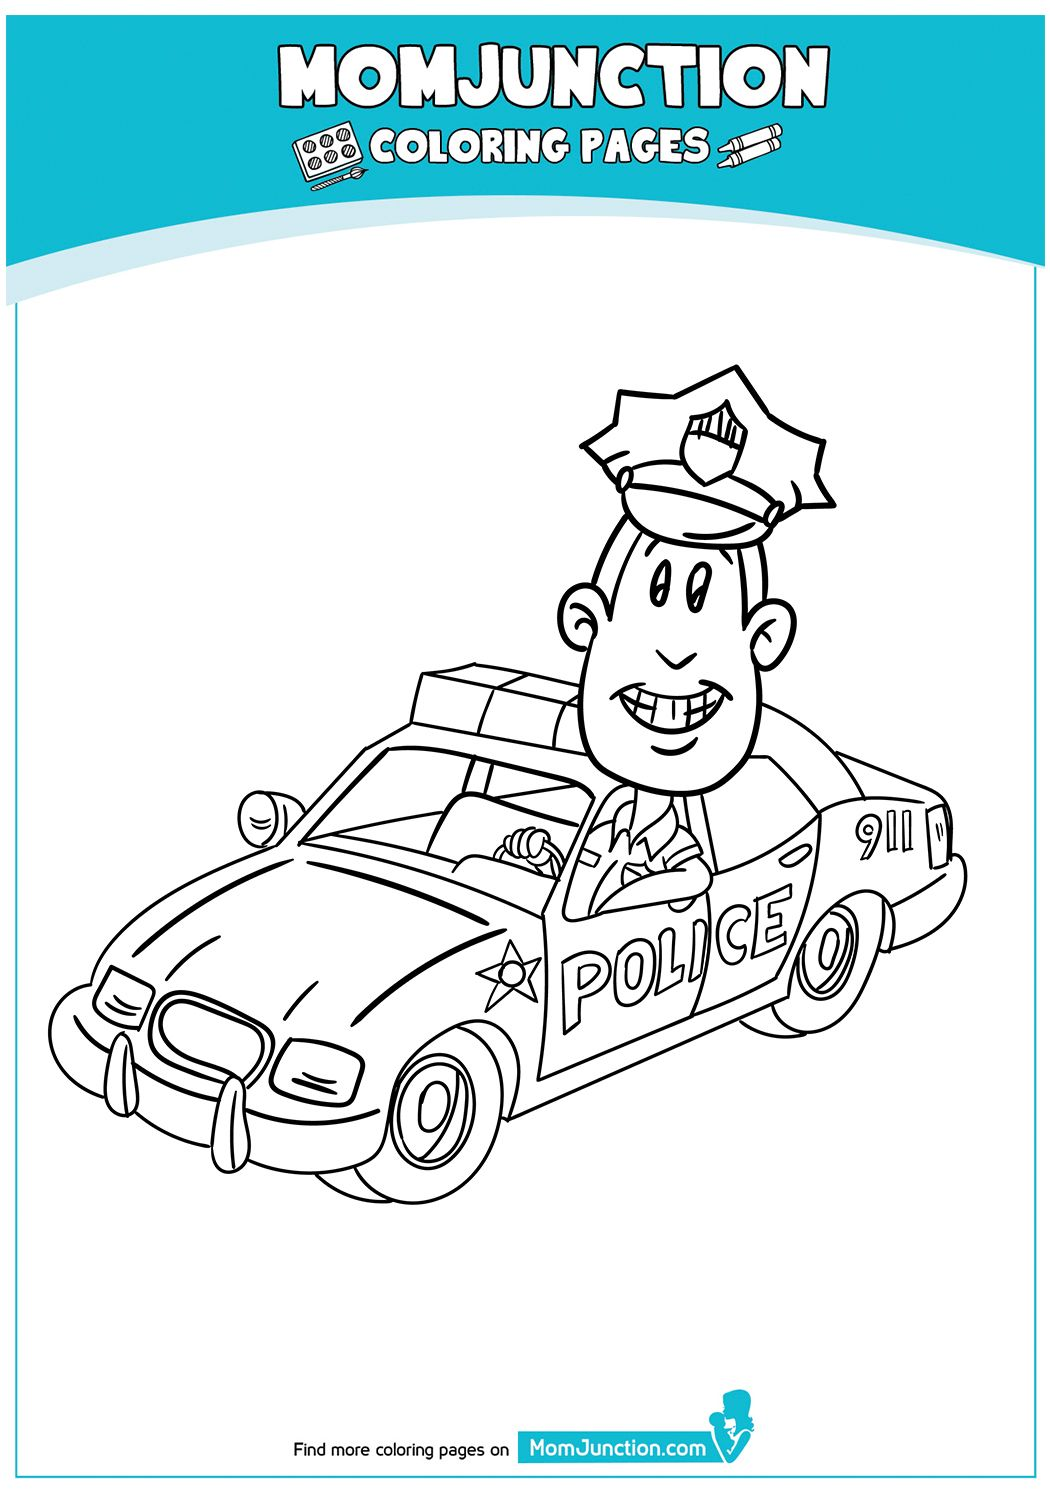 Print Coloring Image Momjunction Cars Coloring Pages Coloring Pages Spy Games For Kids